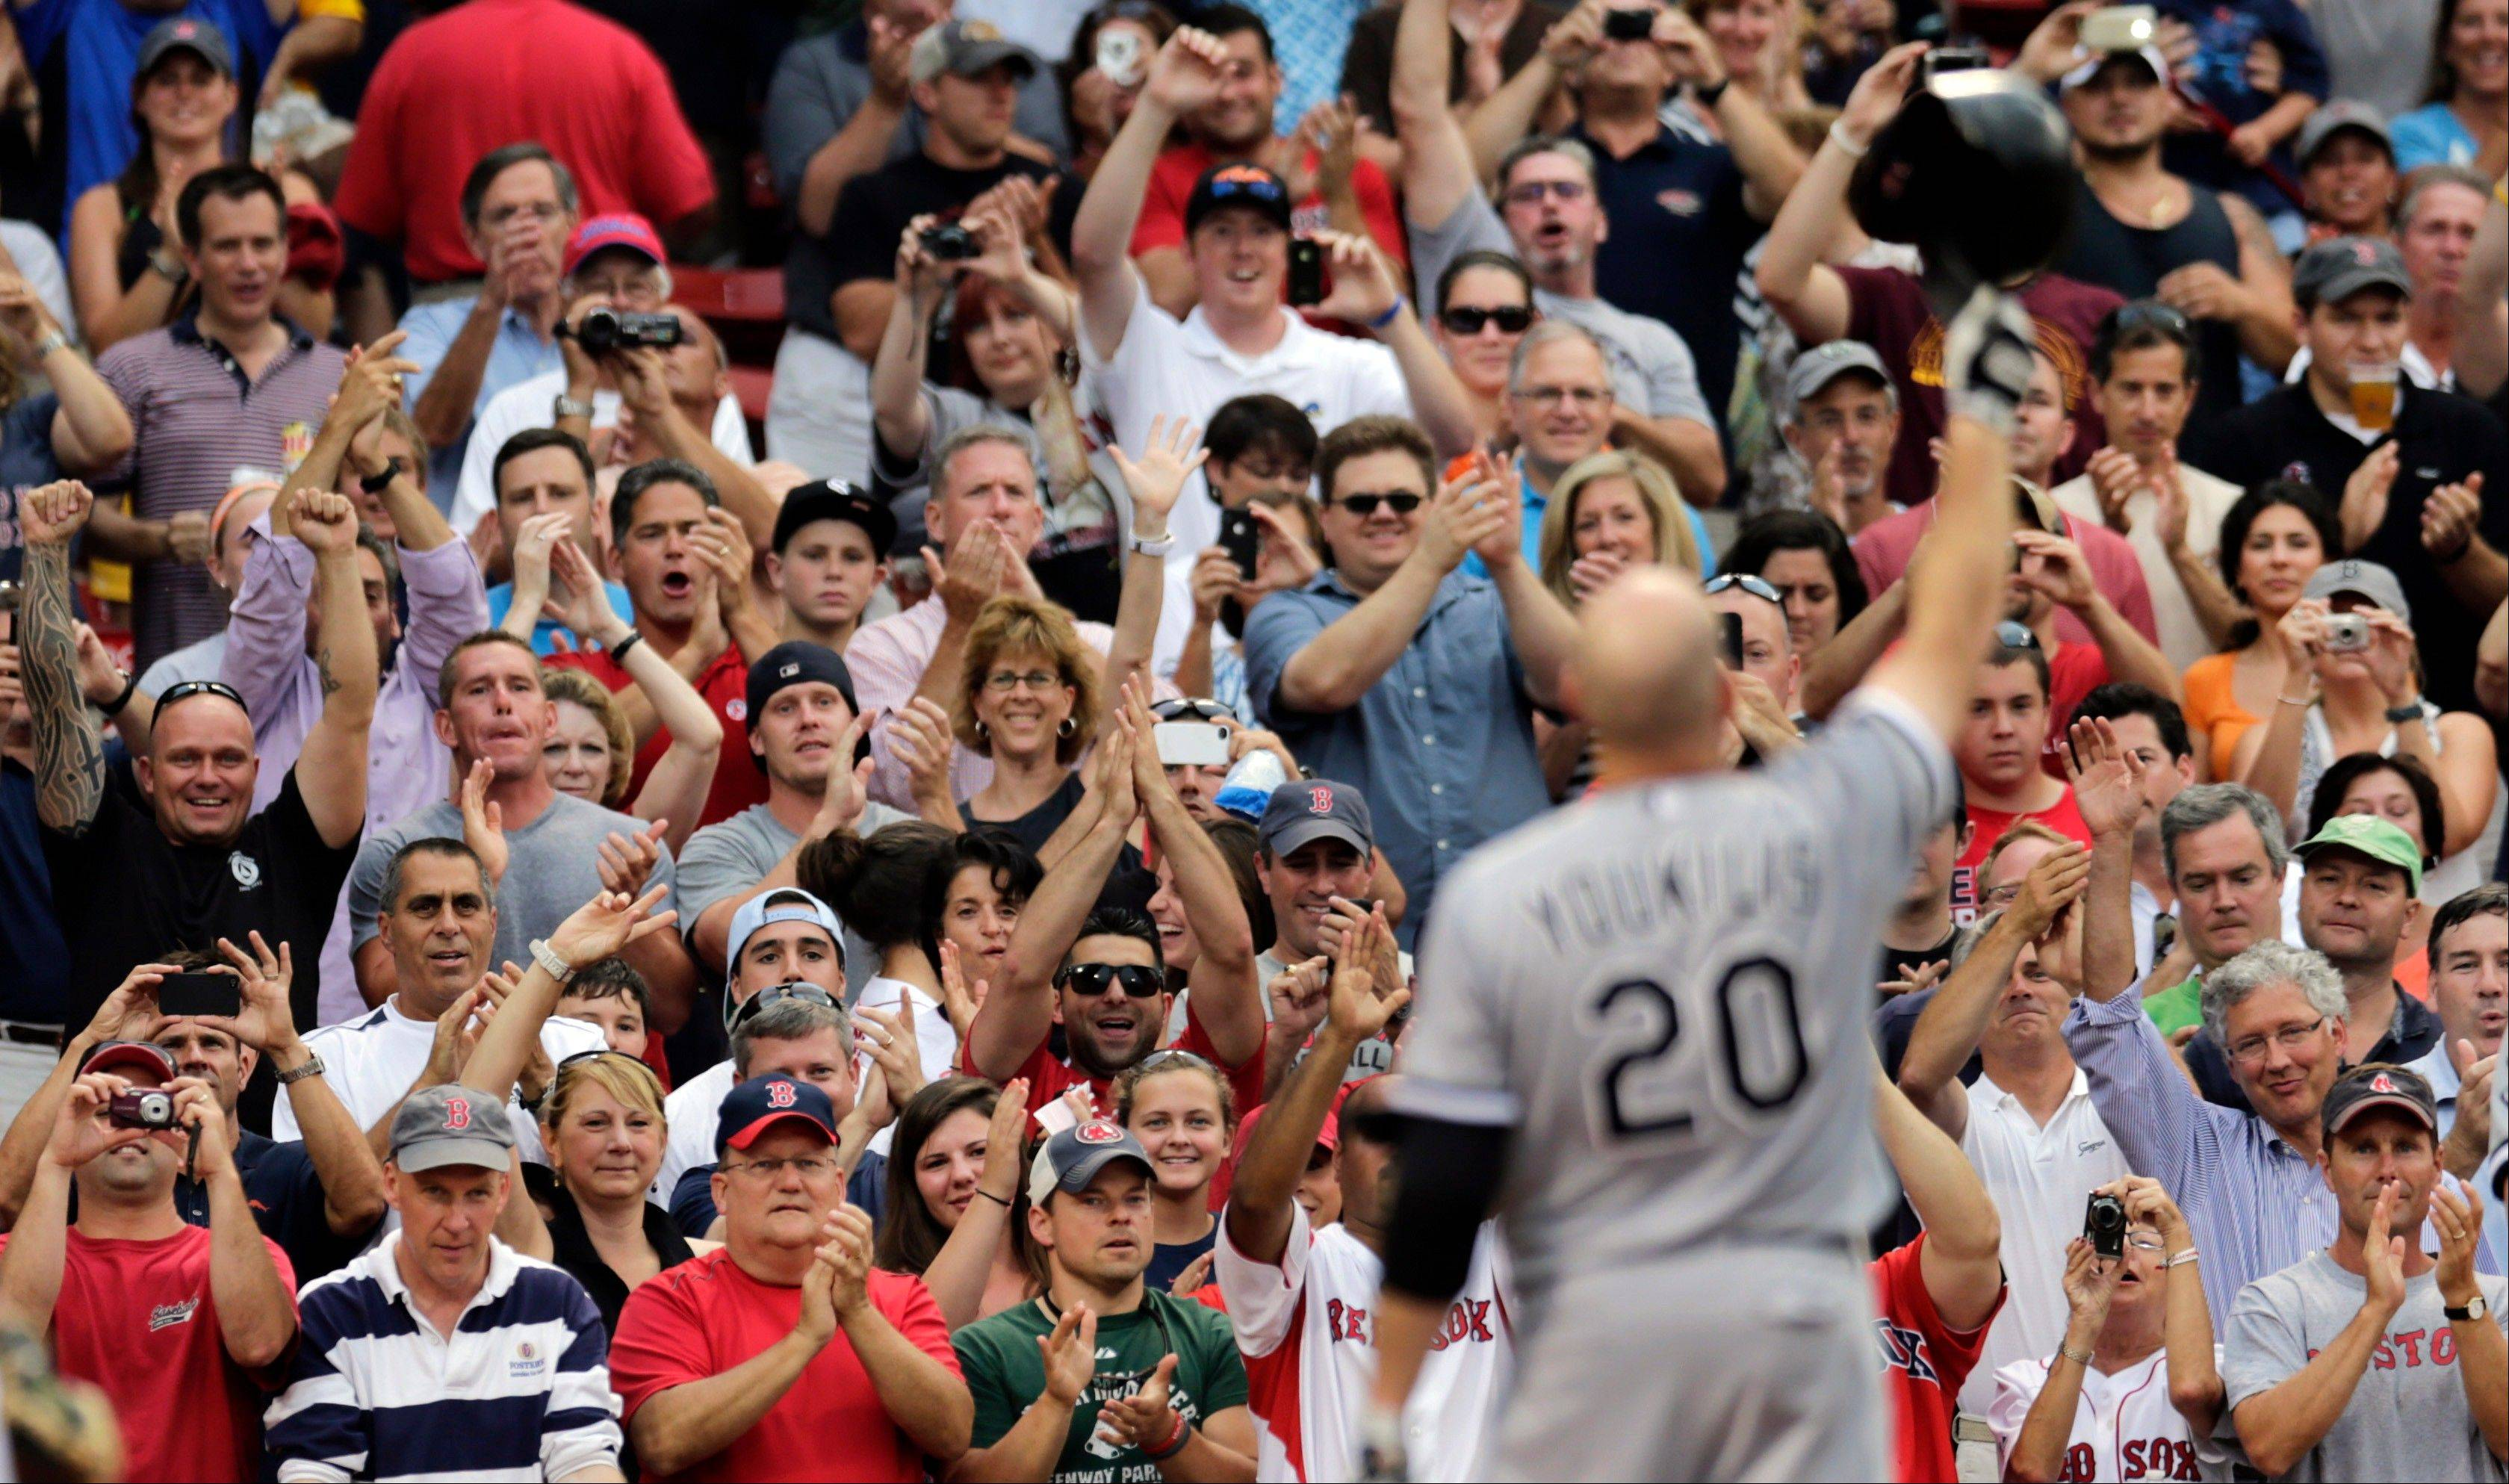 White Sox third baseman Kevin Youkilis tips his batting helmet to fans Monday as he receives a standing ovation during the first inning against the Boston Red Sox at Fenway Park. Youkilis was traded from Boston to Chicago earlier this summer.